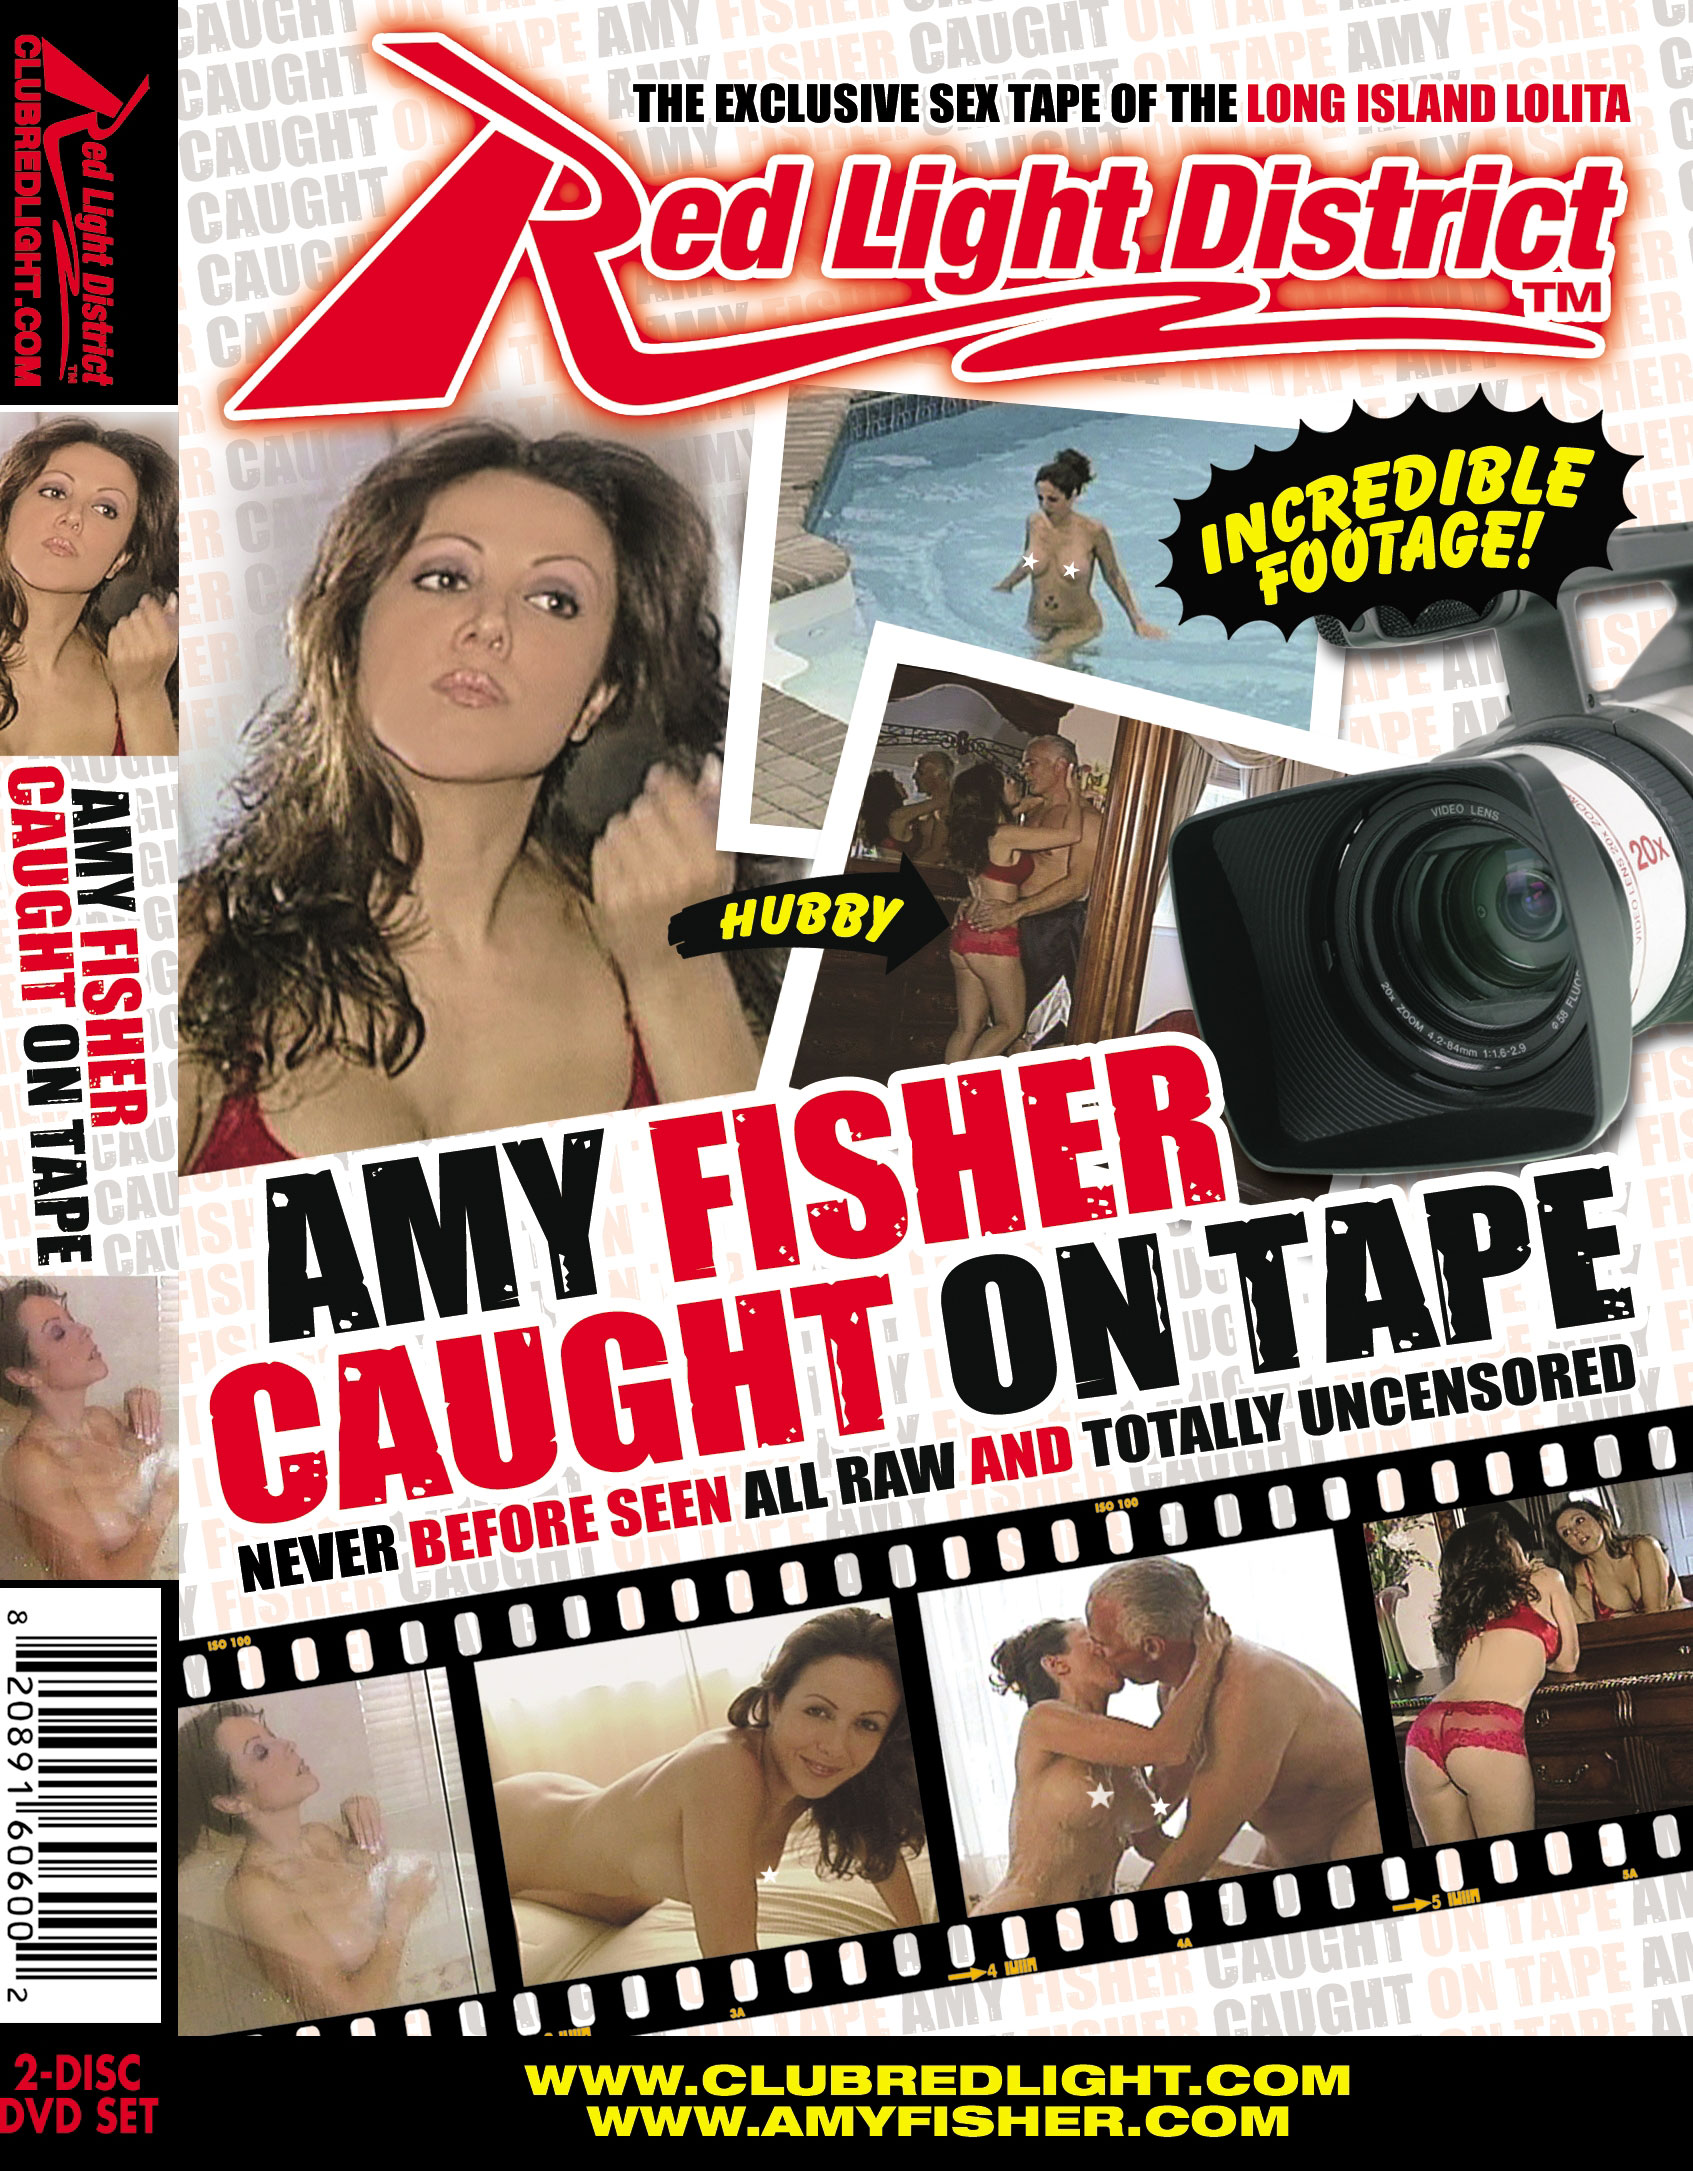 Amy fischer caught on tape